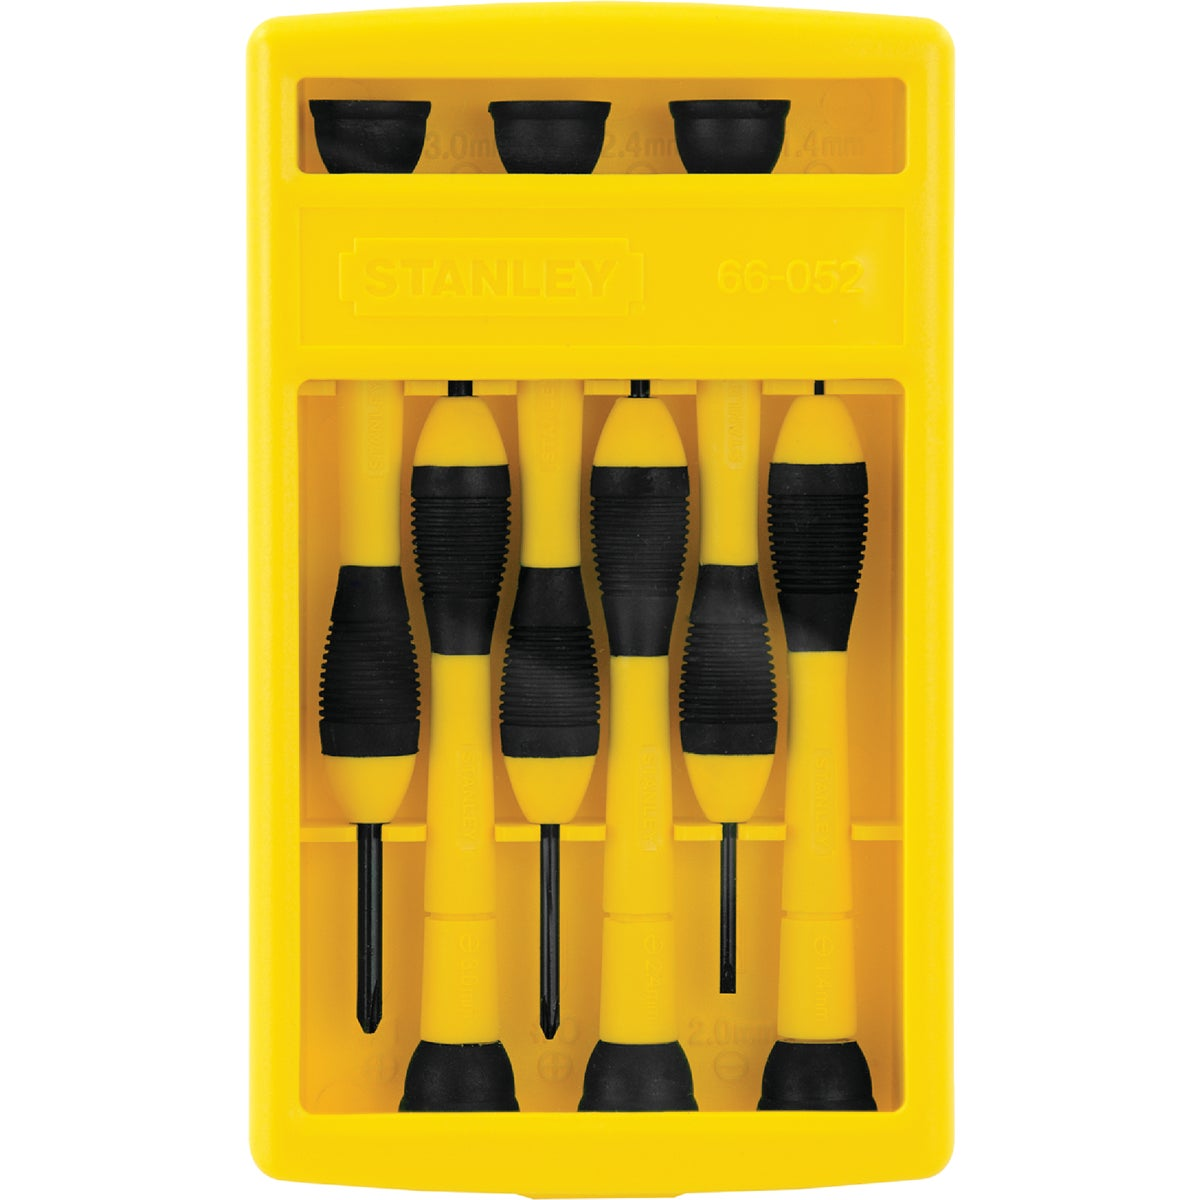 6PC SCREWDRIVER SET - 66-052 by Stanley Tools